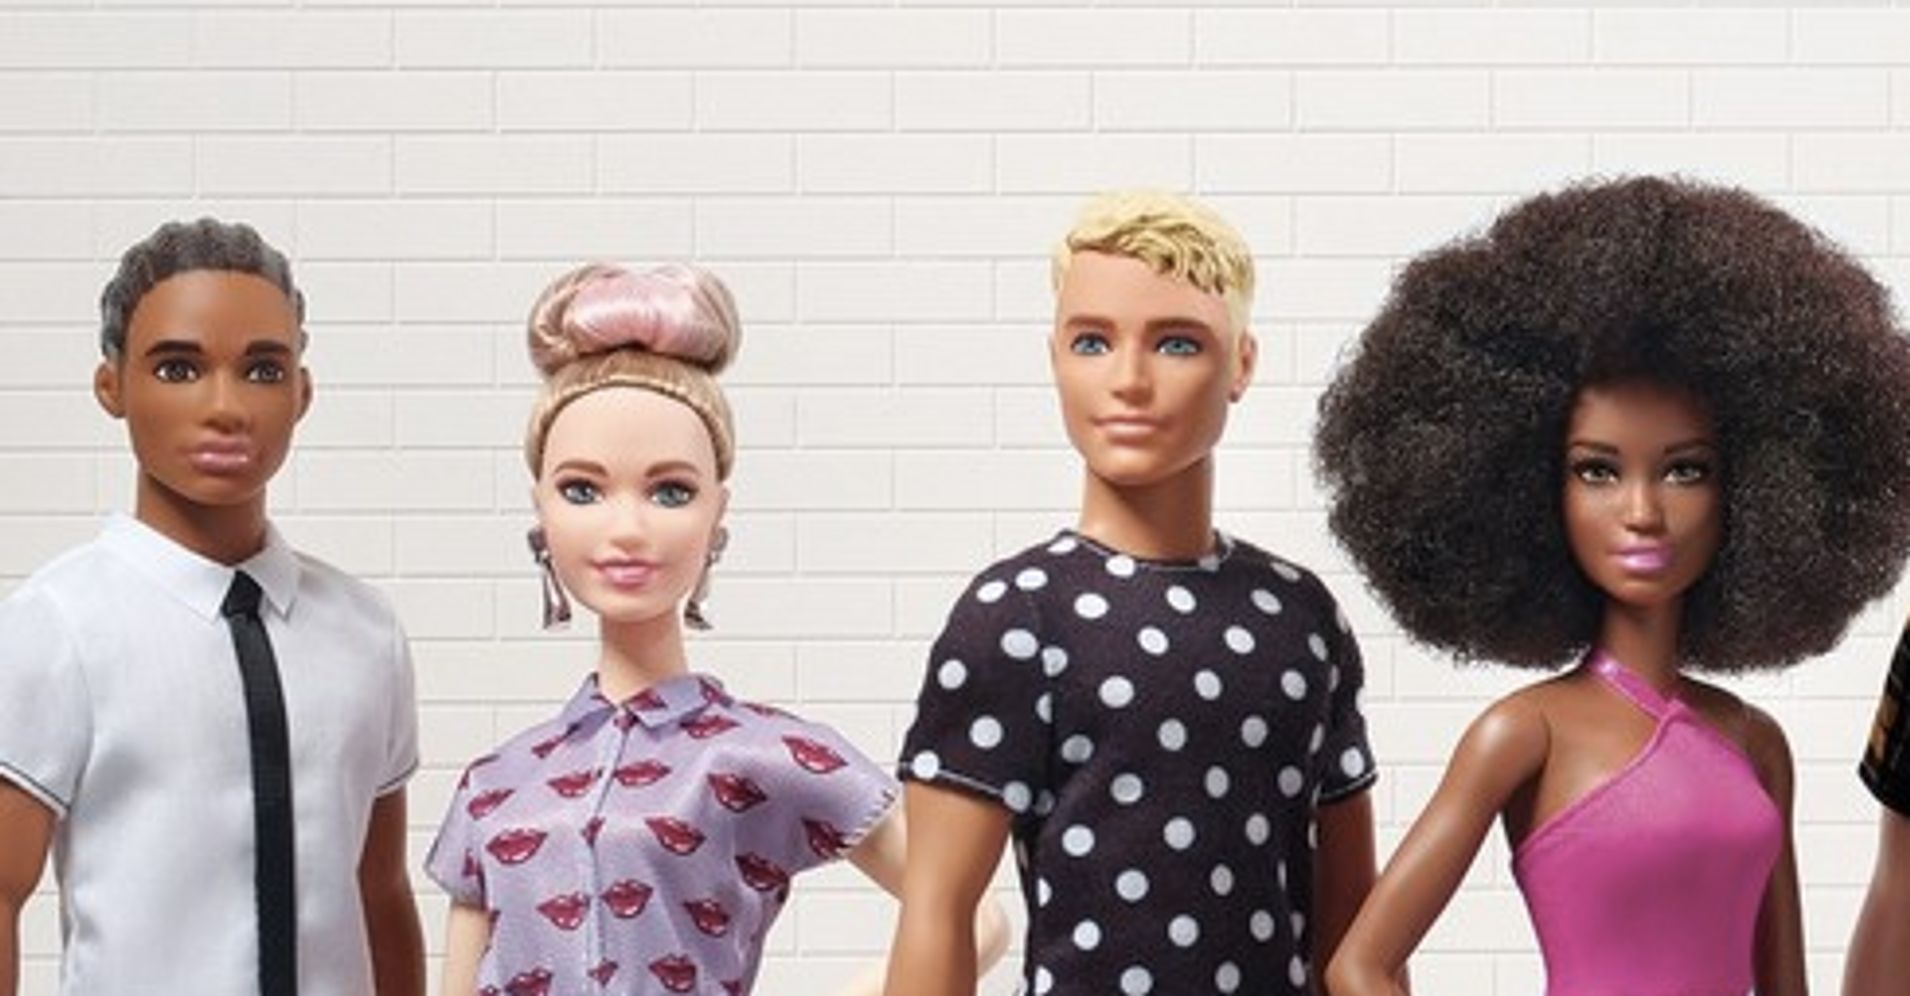 Ken Doll Gets A Makeover With New Body Types Skin Tones